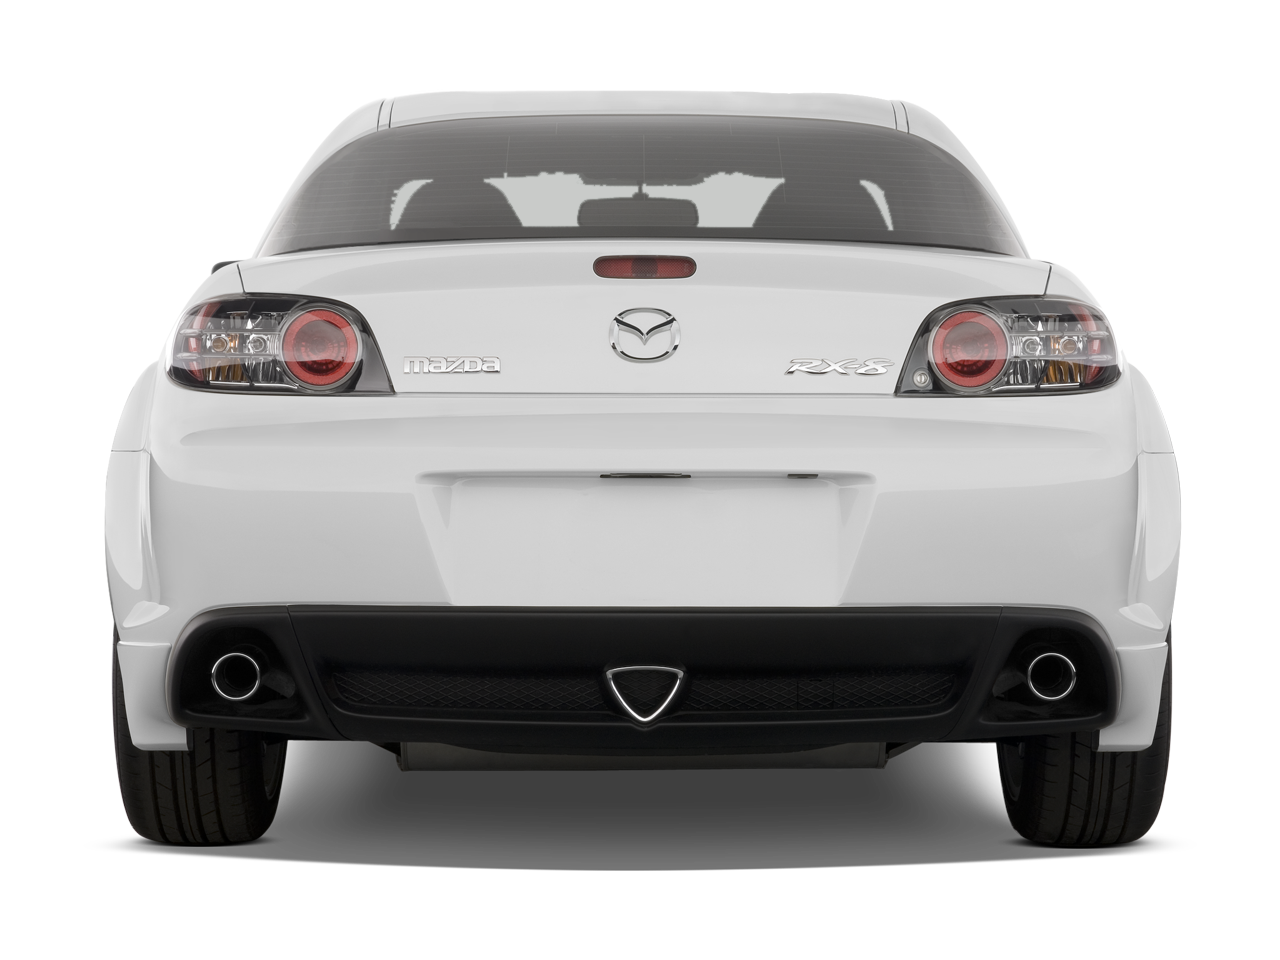 http://st.automobilemag.com/uploads/sites/10/2015/11/2008-mazda-rx8-grand-touring-coupe-rear-view.png